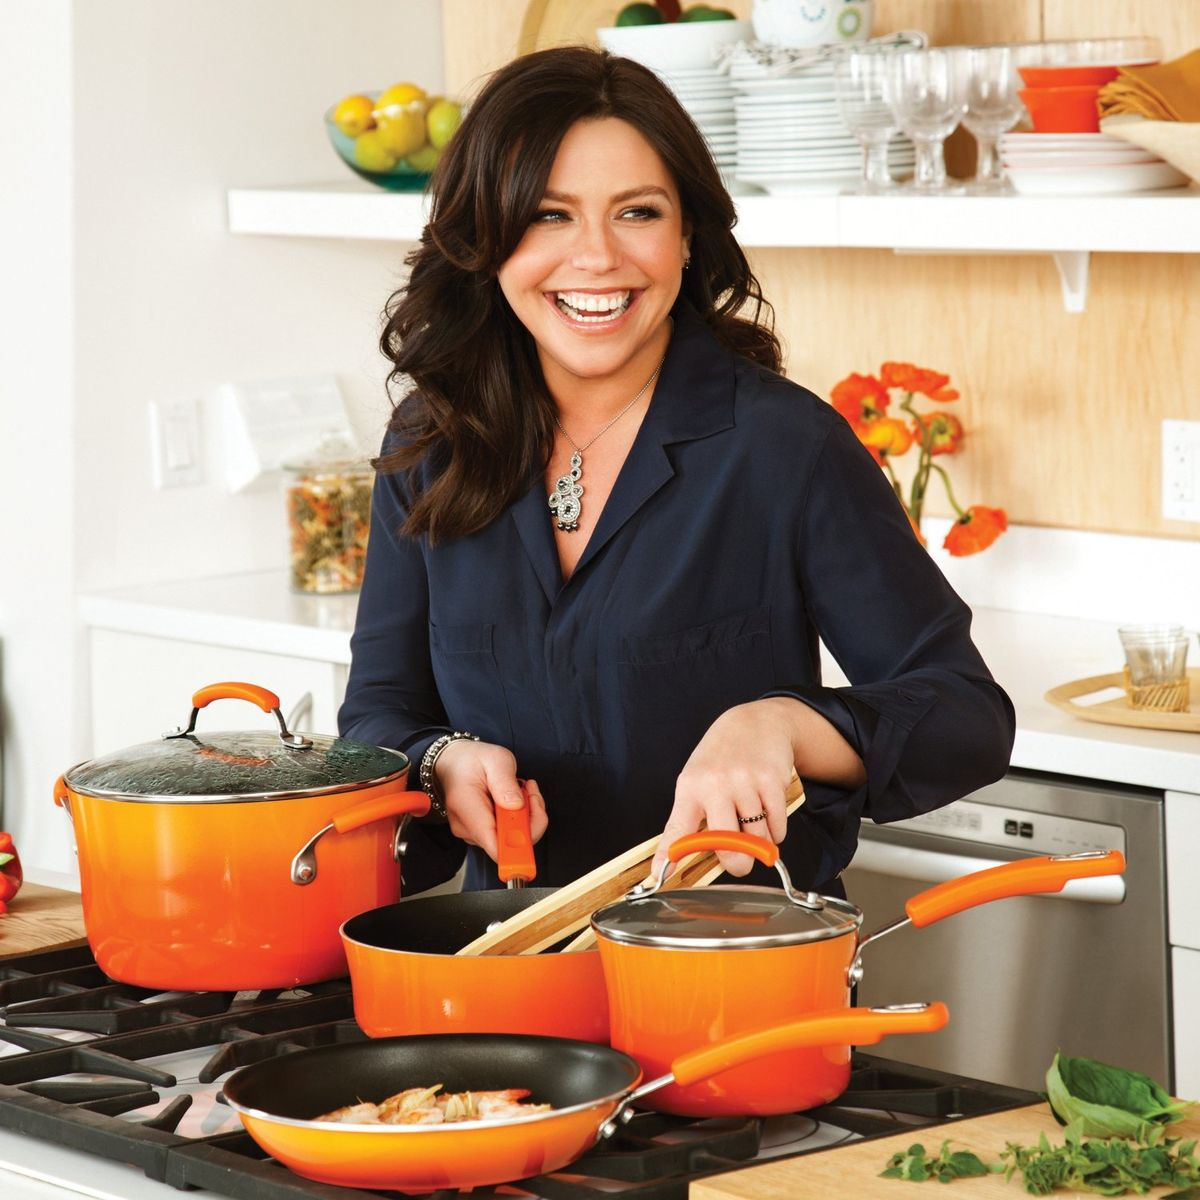 Headline for Celebrity Chef's Festive Cooking Part 3 : Rachael Ray